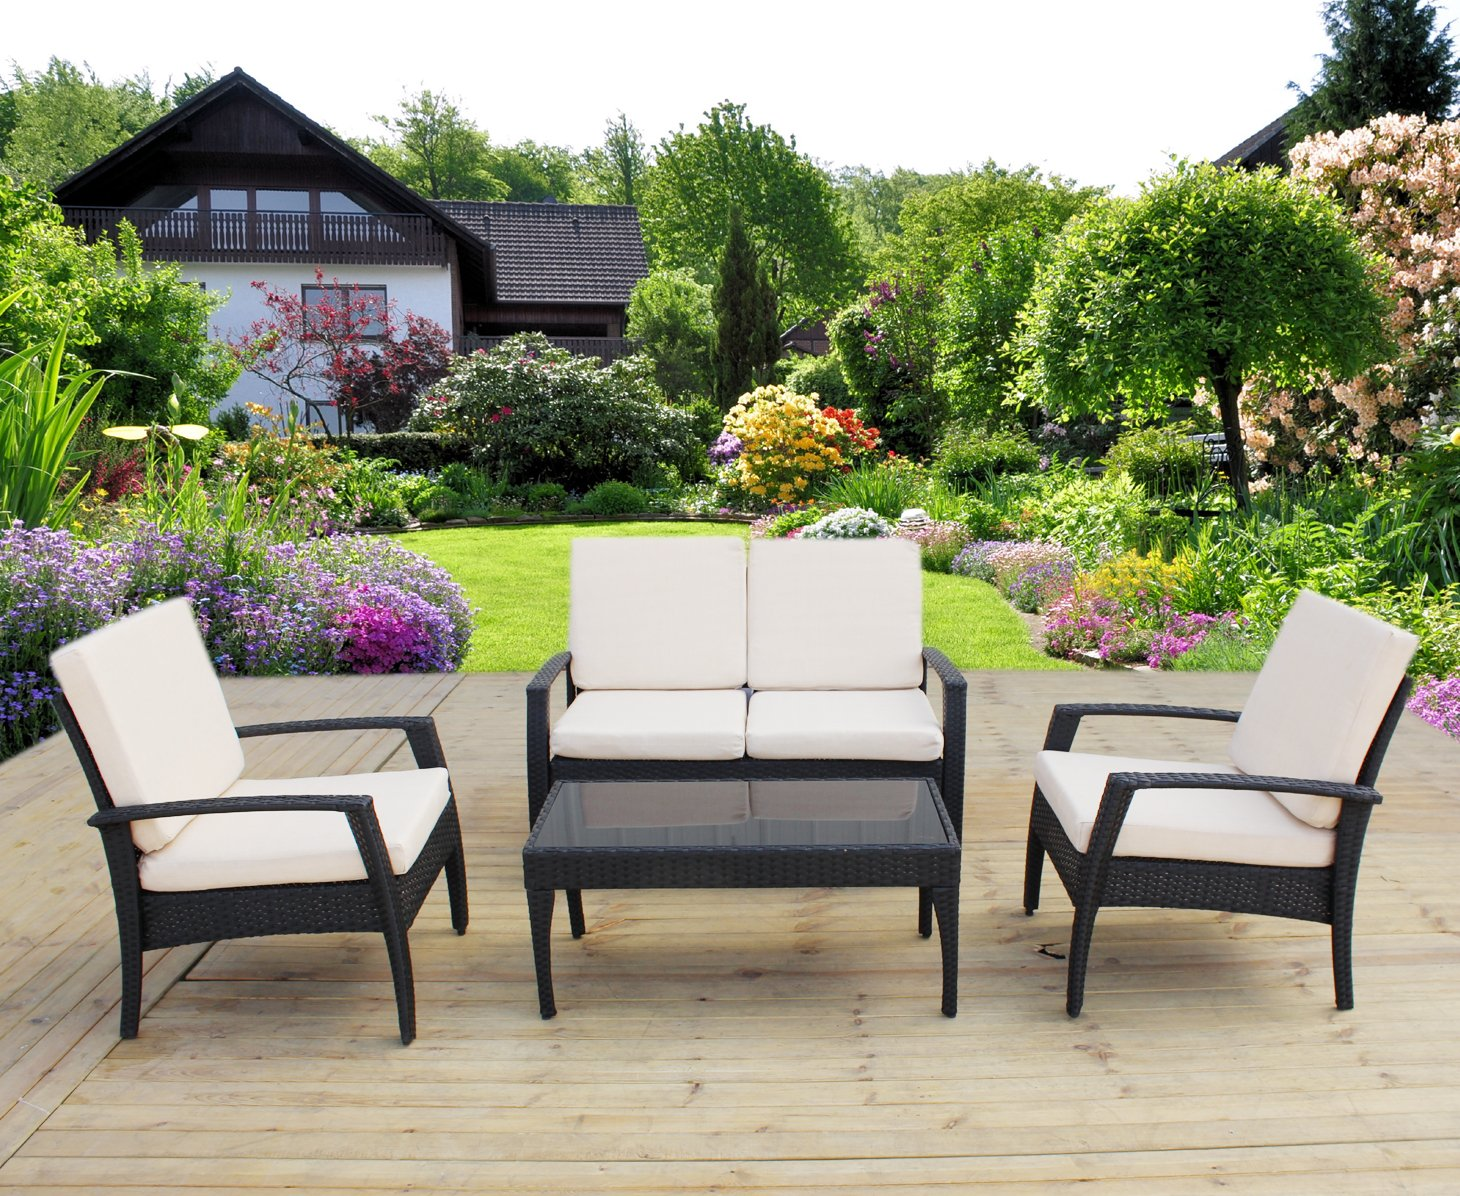 HereDeco 4PCS Patio Rattan Wicker Furniture Set Cushioned Outdoor Wicker Sofa Couch Lawn Chair Table (Black Wicker)